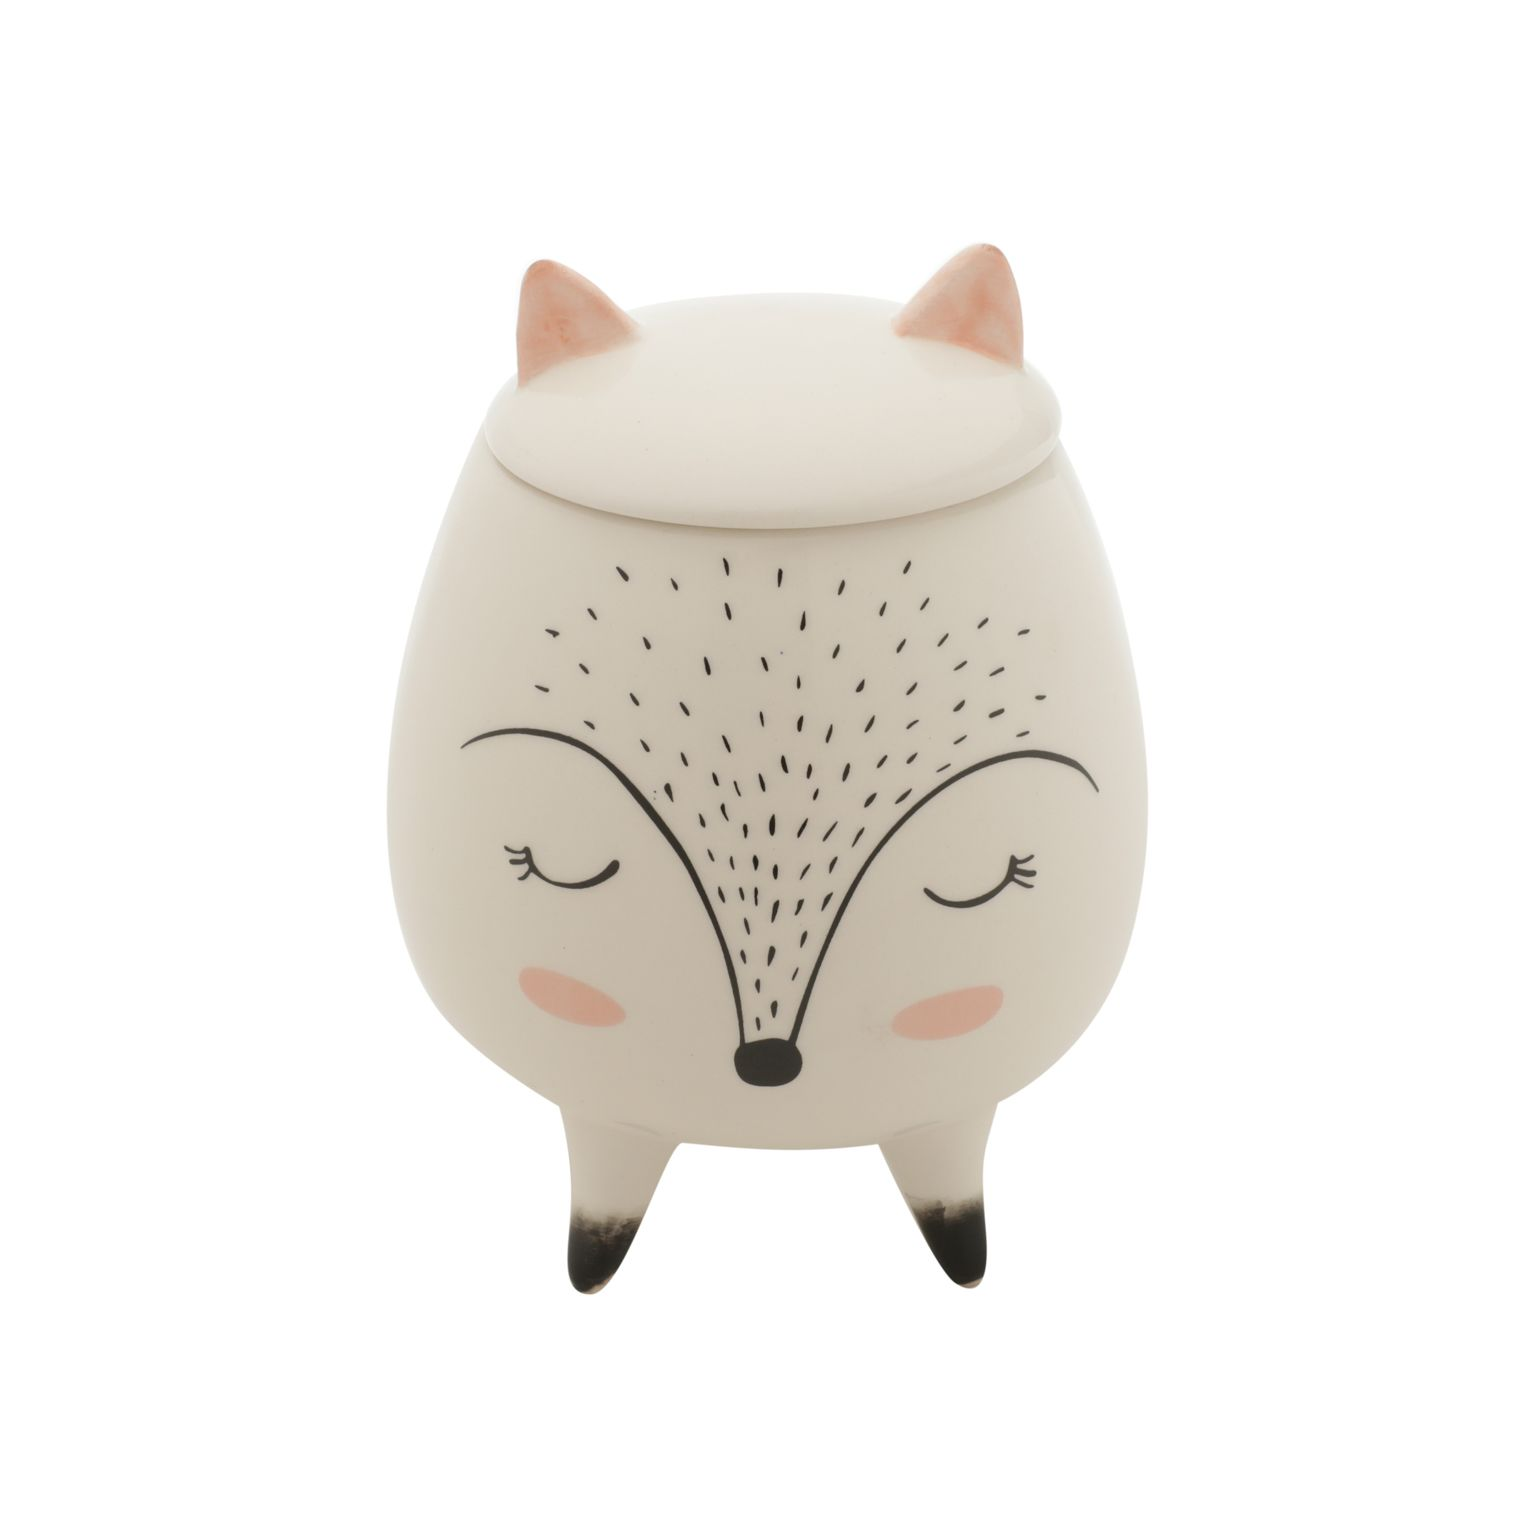 Potiche Decorativo Cerâmica Sleeping Fox Branco 10,4X10,4X14 Cm - Urban